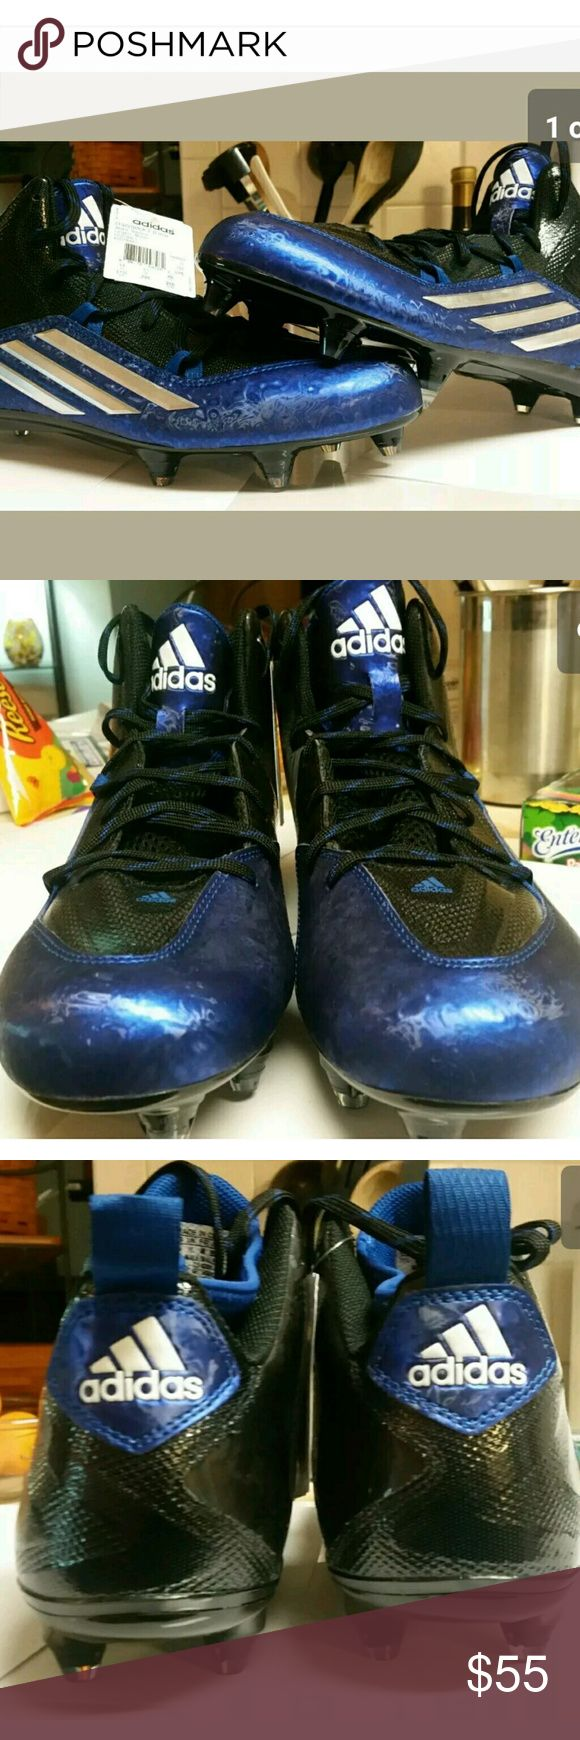 ADIDAS FOOTBALL CLEATS SIZE 11.5 CRAZYQUICK 2.0 MEN'S Adidas Crazyquick 2.0 Mid Football Cleats Blue Black   GREAT FOOT BALL CLEATS WRITTEN THROUGH OUT THE BLACK ARE MOTIVATIONAL SAYINGS LIKE CONFIDENT,PLAY FASTER,ELUSIVE,DRESS LOUDER,SPEAK LOUDER TO HELP YOU ALWAYS STAY IN THE GAME!!   US 11.5   CHECK ALL MY OTHER ATHLETIC LISTINGS FOR A POTENTIAL BUNDLE FOR EXTRA SAVINGS!  ITEM WILL COME BOXED PROFESSIONALLY!!!!!   CHECK ALL MY REVIEWS BUY WITH COMPLETE CONFIDENCE!!!!!   I AIM FOR THE BEST…